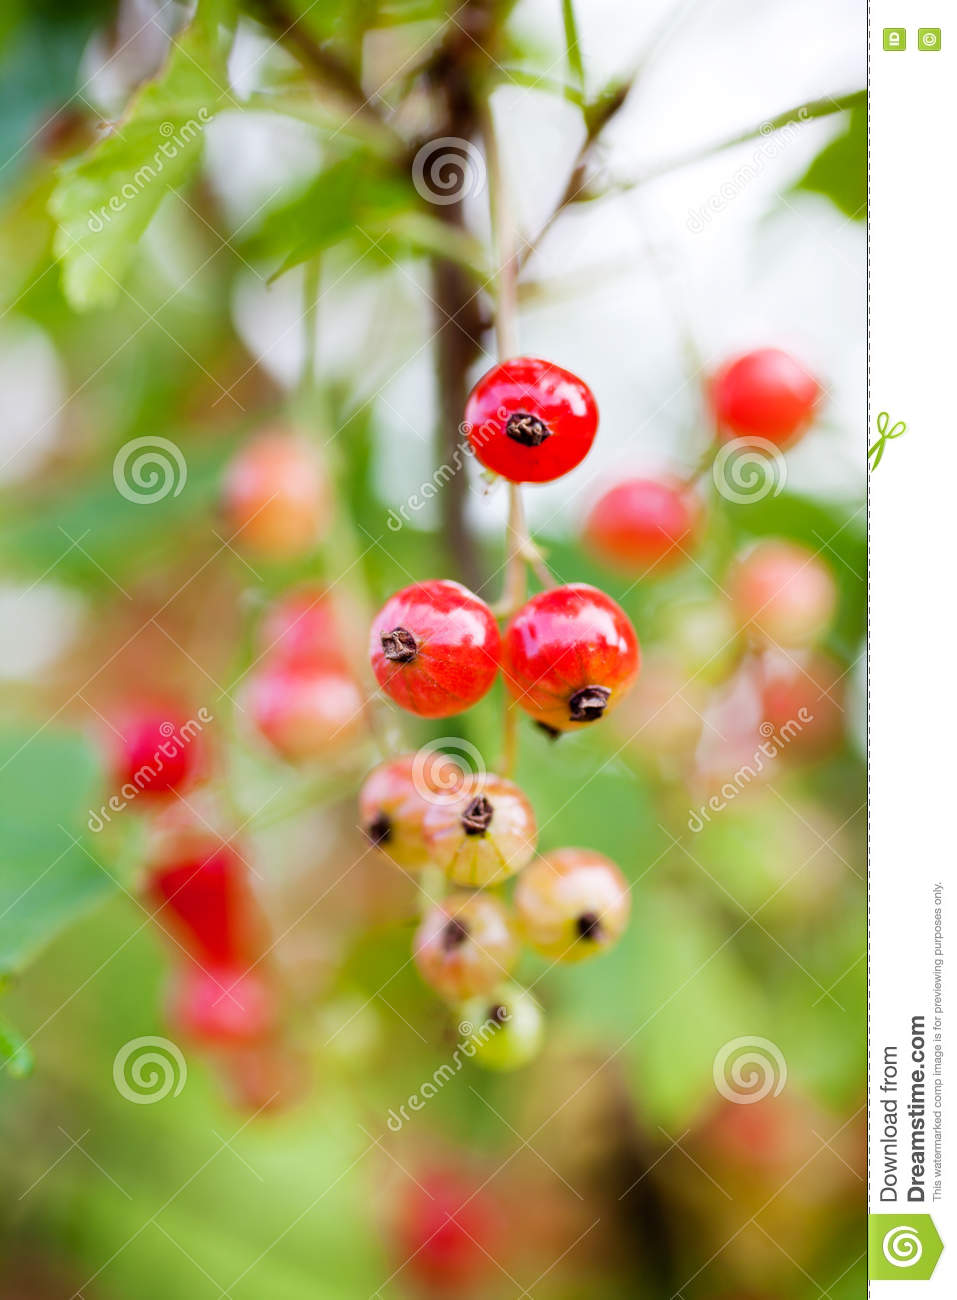 how to grow red currant from seeds